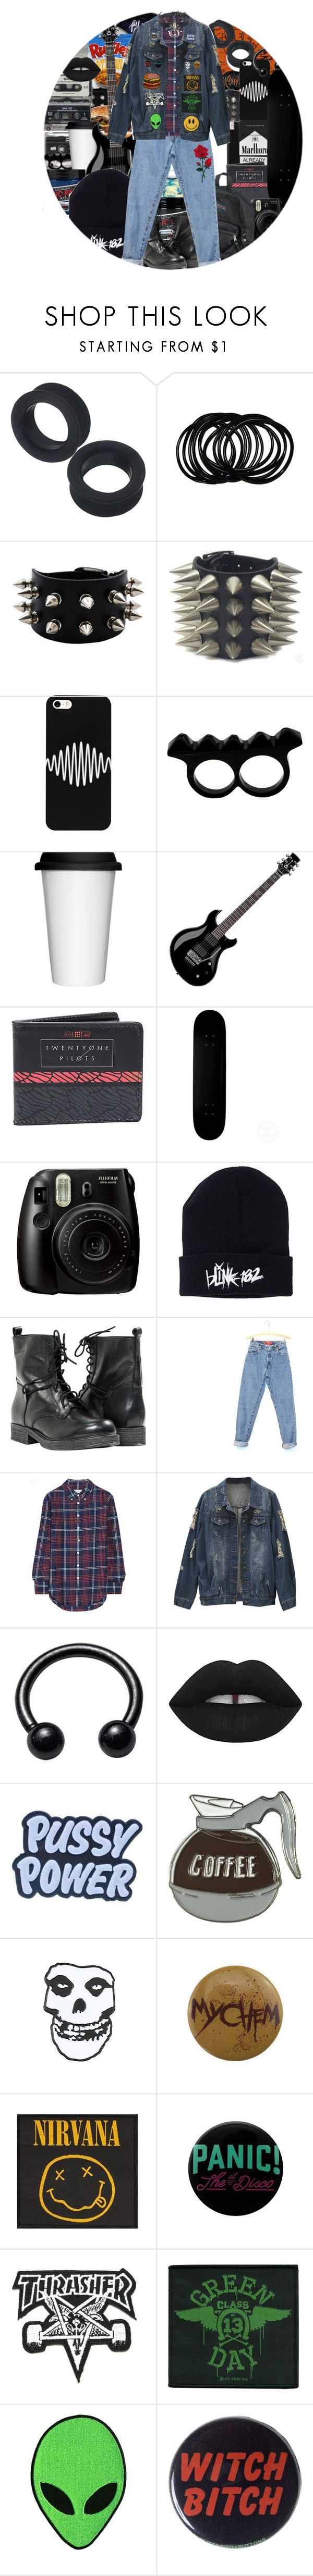 """G R U N G E"" by chemicalfallout249 ❤ liked on Polyvore featuring Manic Panic NYC, Junk Food Clothing, CASSETTE, L'Artisan Créateur, Sagaform, Floyd, Hot Topic, Fujifilm, Paolo Shoes and Levi's"